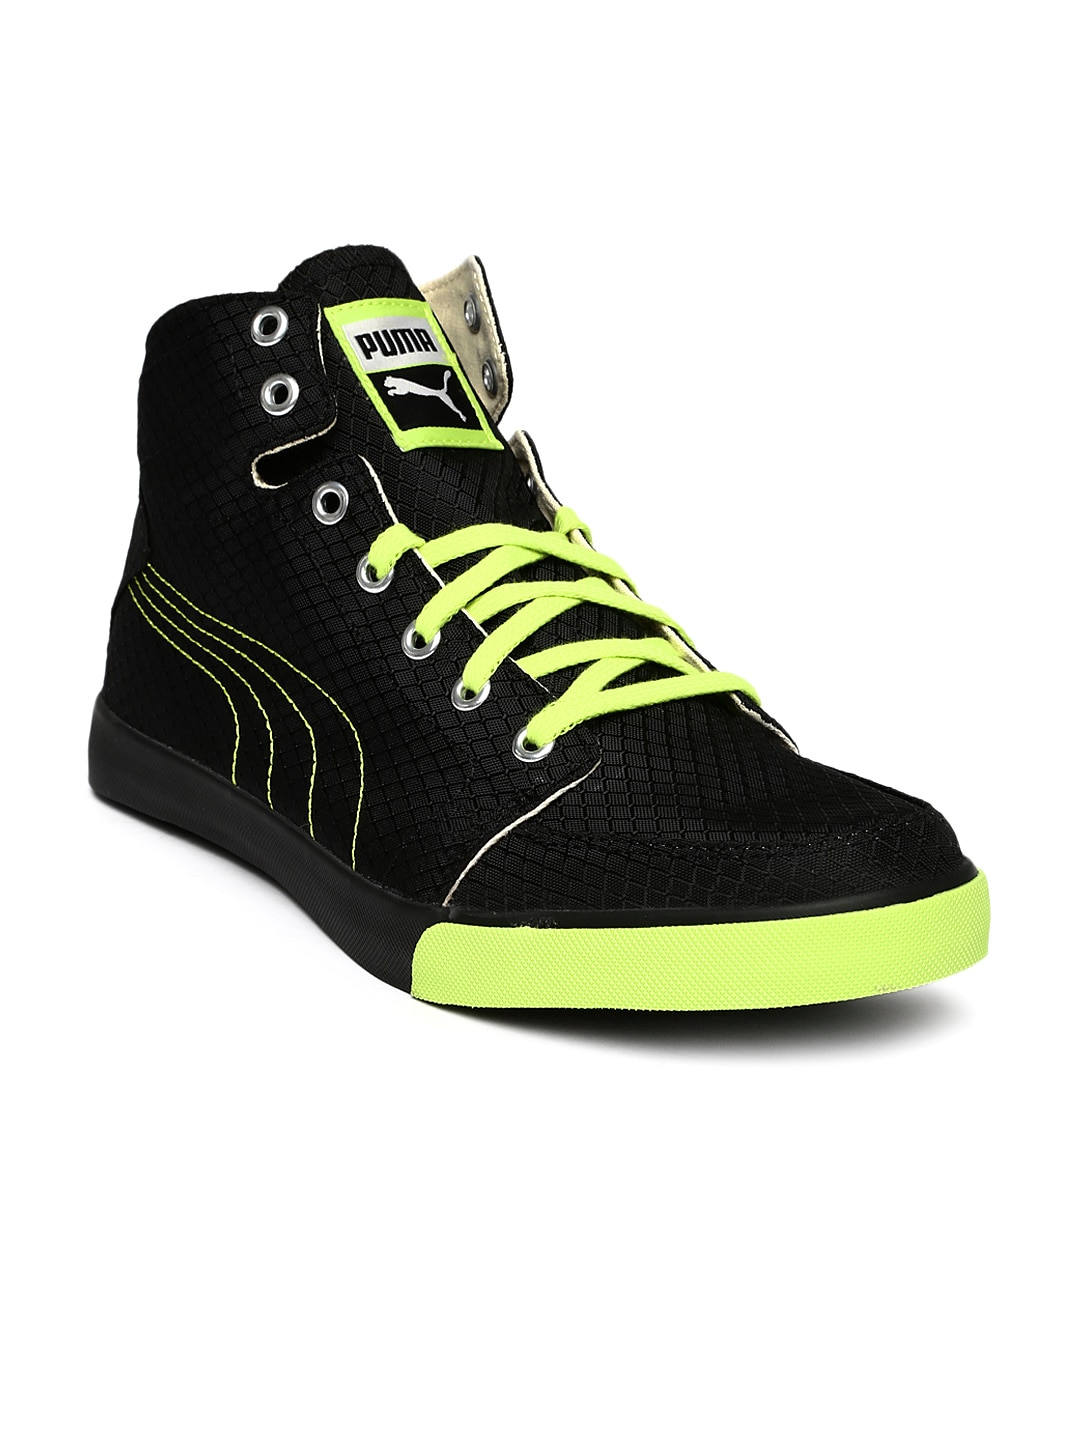 6e0d787a1dfbc3 Puma Pu Synthetic Shoes - Buy Puma Pu Synthetic Shoes online in India